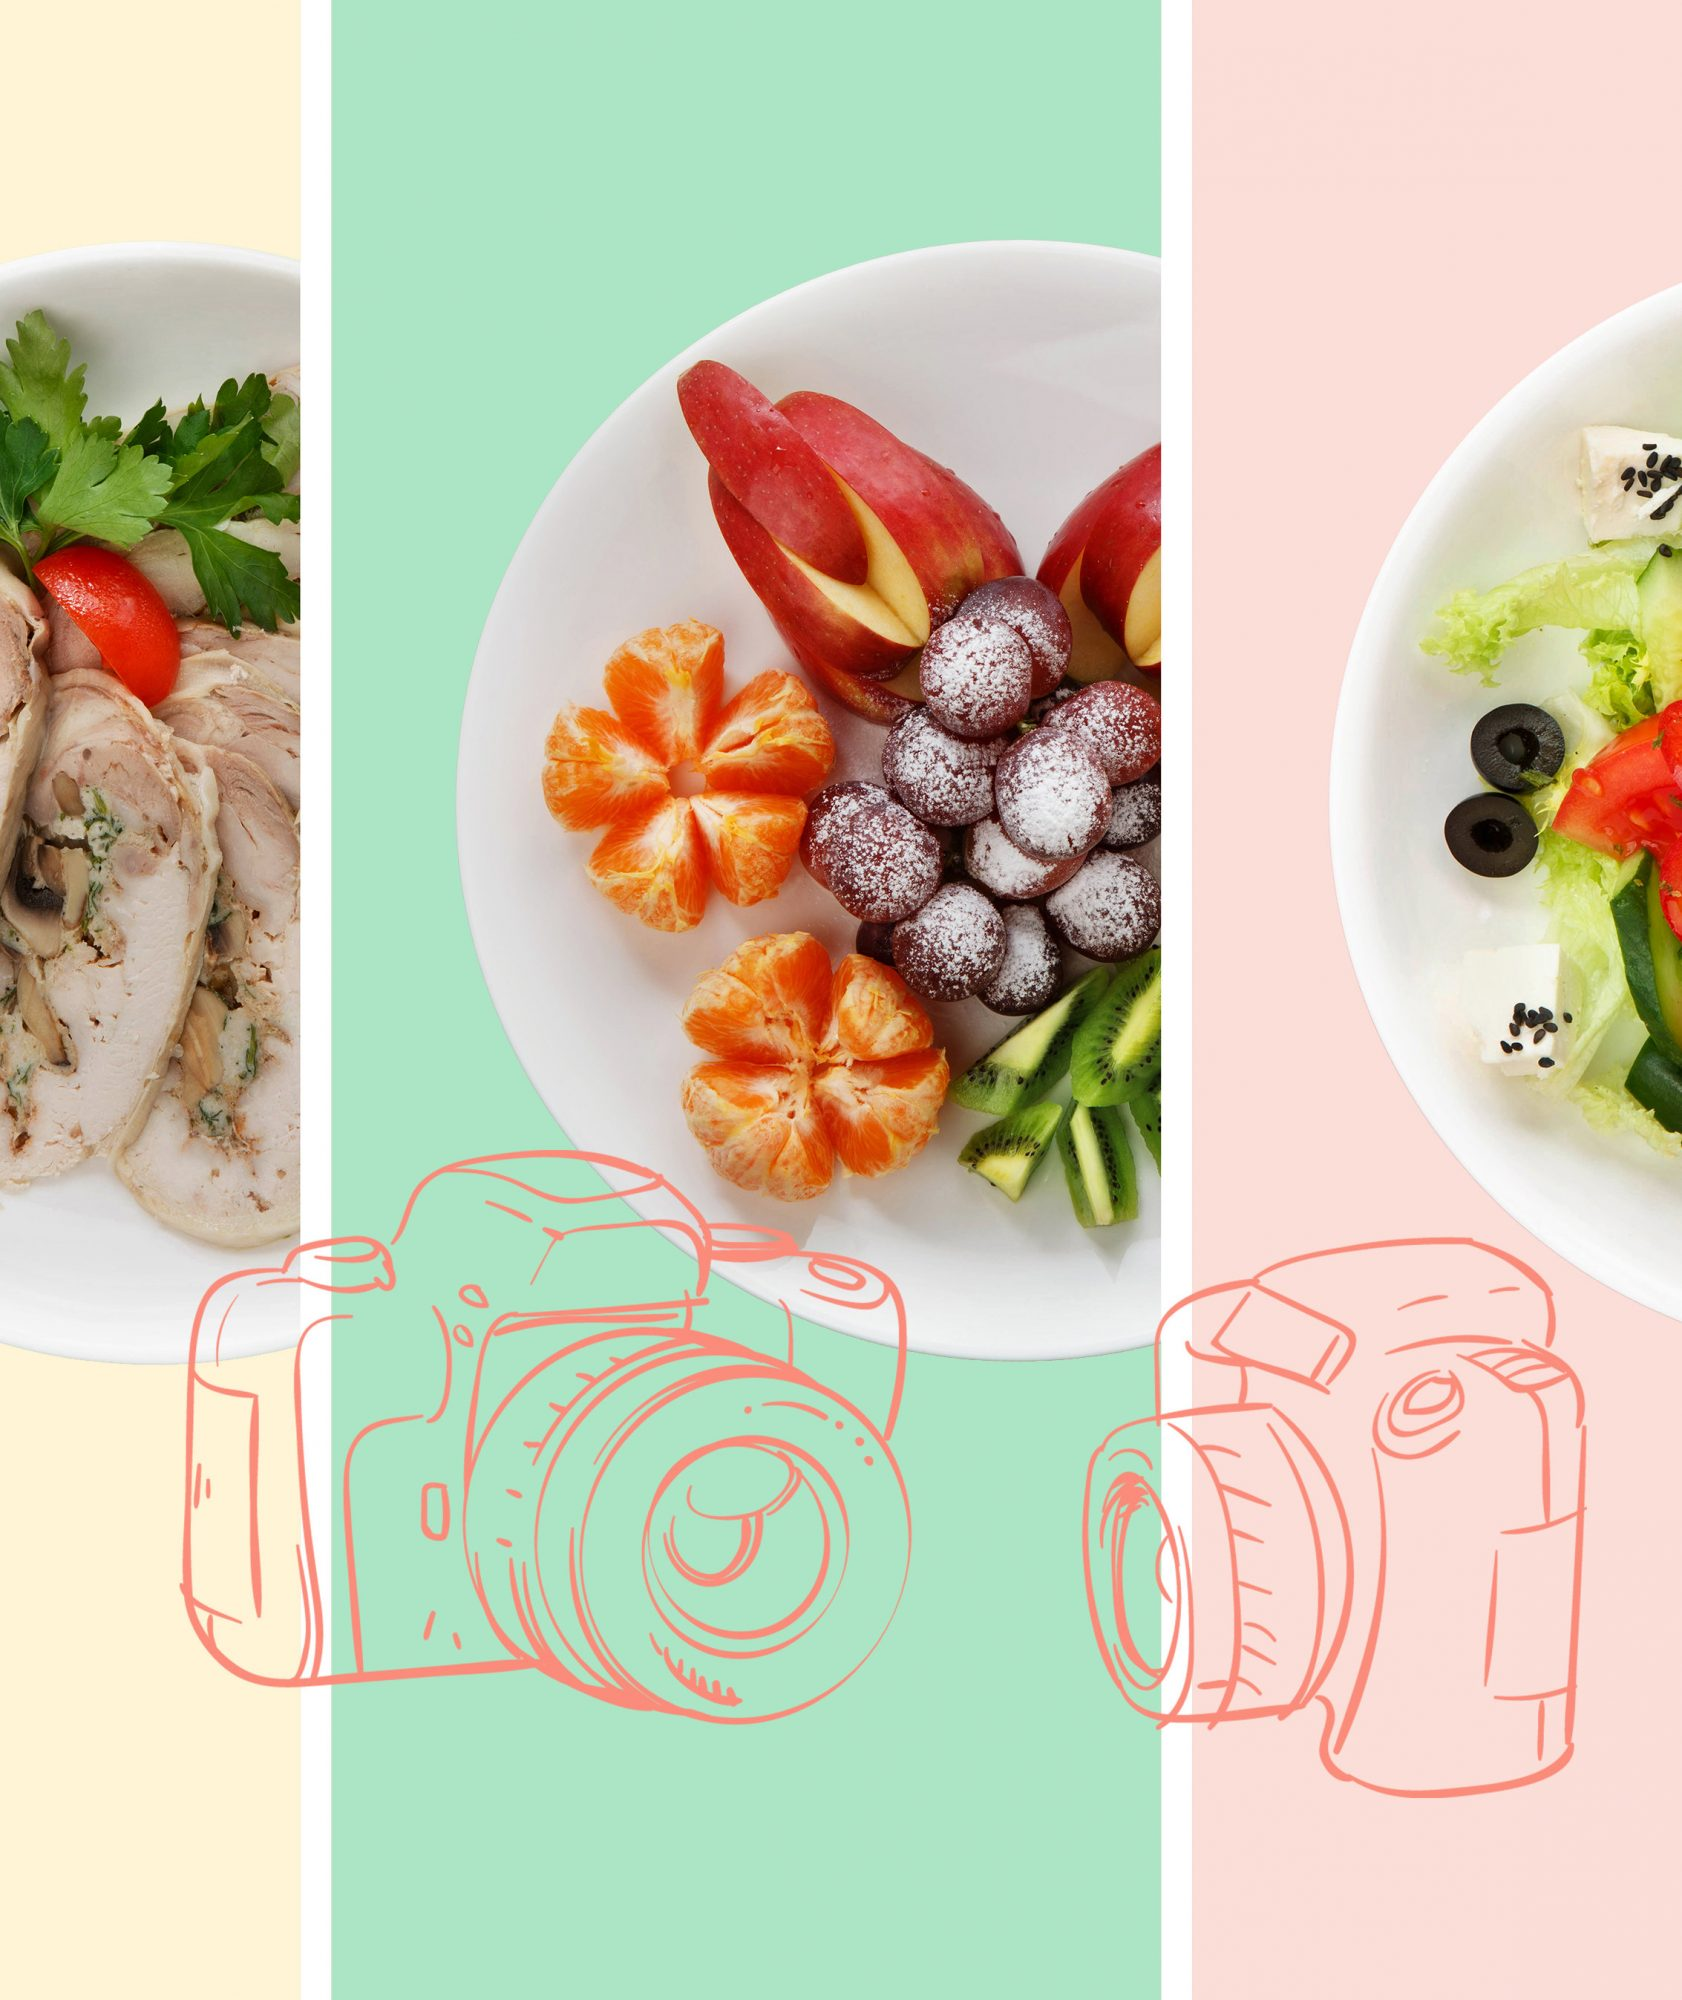 The Secret to Capturing Picture-Perfect Food Photos, According to an Industry Pro